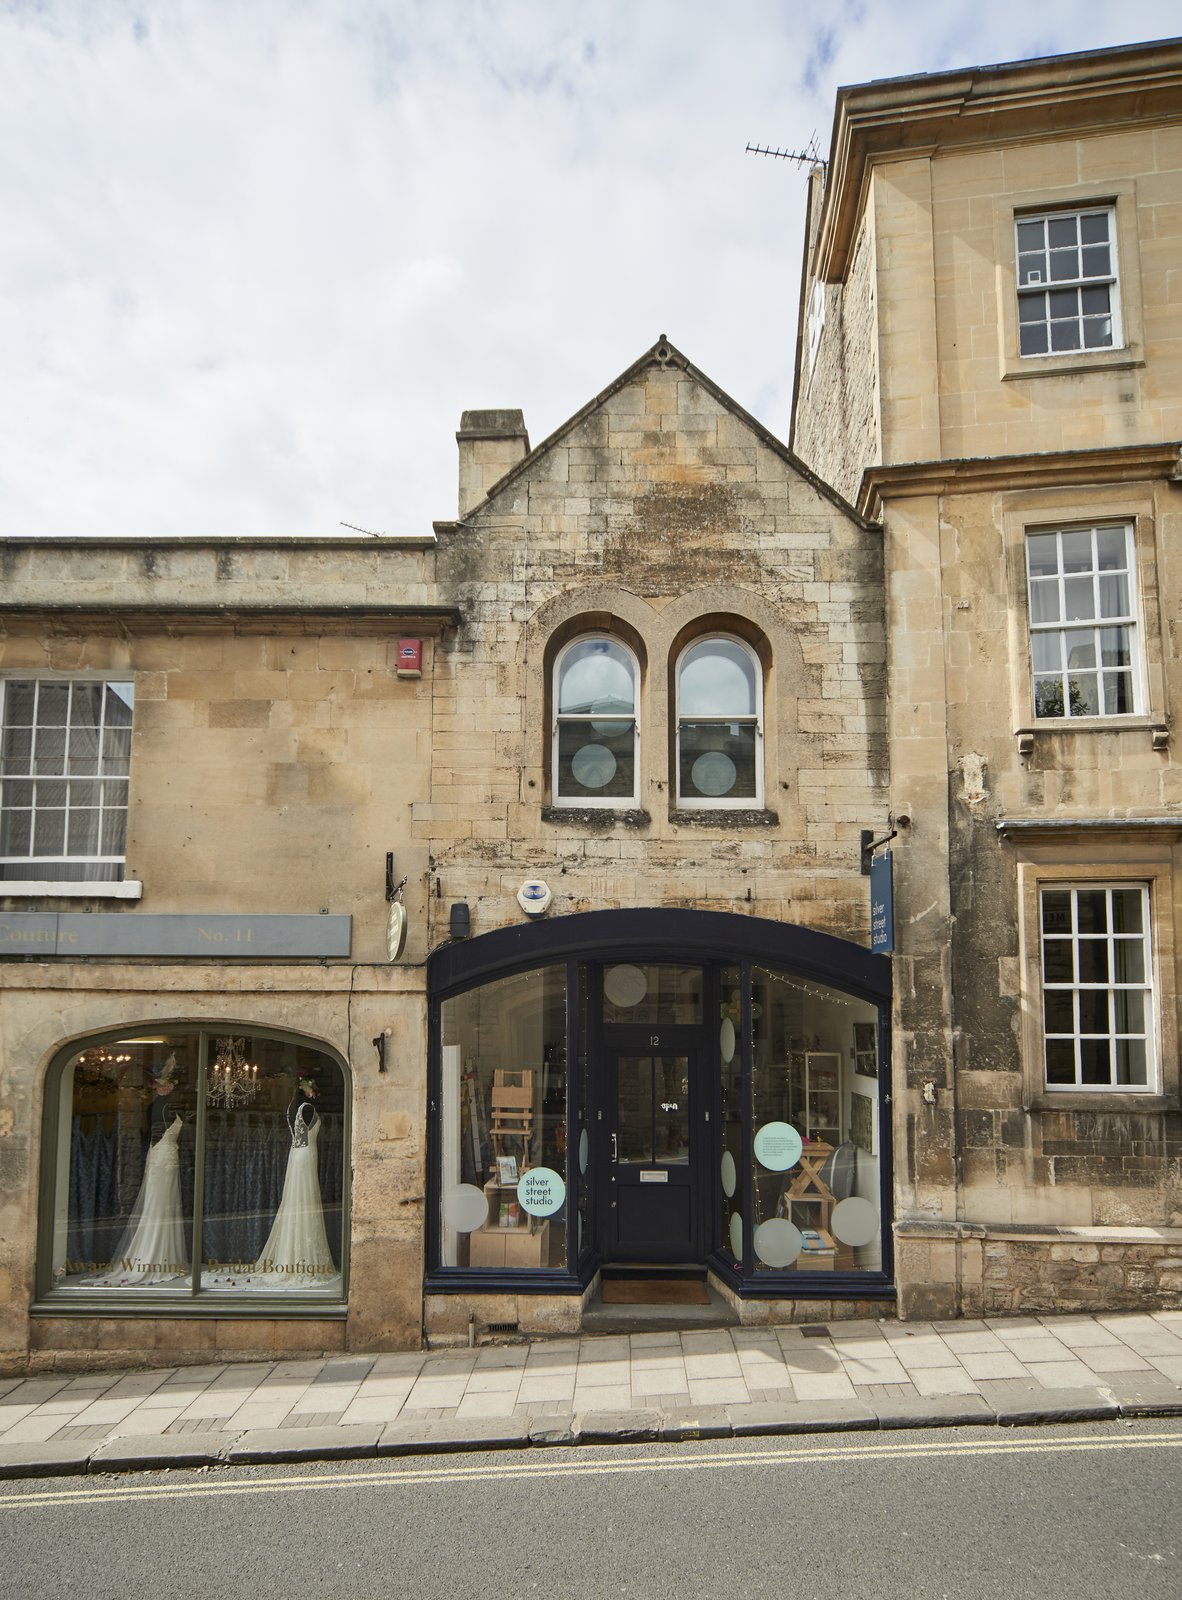 In the heart of the historic town of Wiltshire in Bradford-on-Avon is an apartment in a 19th century building that was refurbished by designed Ian Hill to combine a ground floor commercial space with a cozy first floor studio apartment with a stained glass window. Available for sale through The Modern House  Photo 7 of 8 in 6 Best Dwell UK Apartments